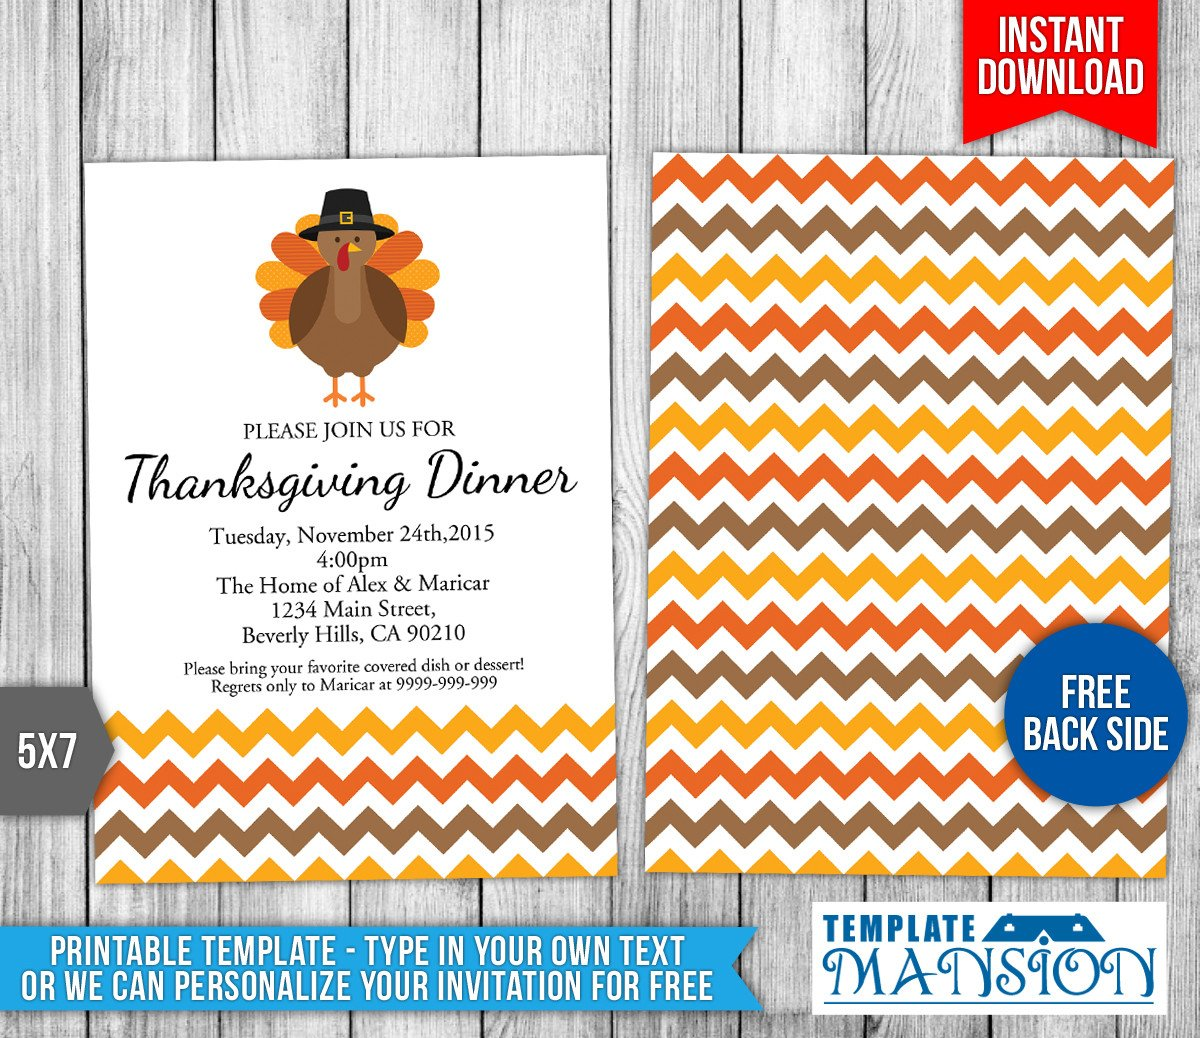 Free Thanksgiving Invitation Templates Thanksgiving Invitation Template 1 by Templatemansion On